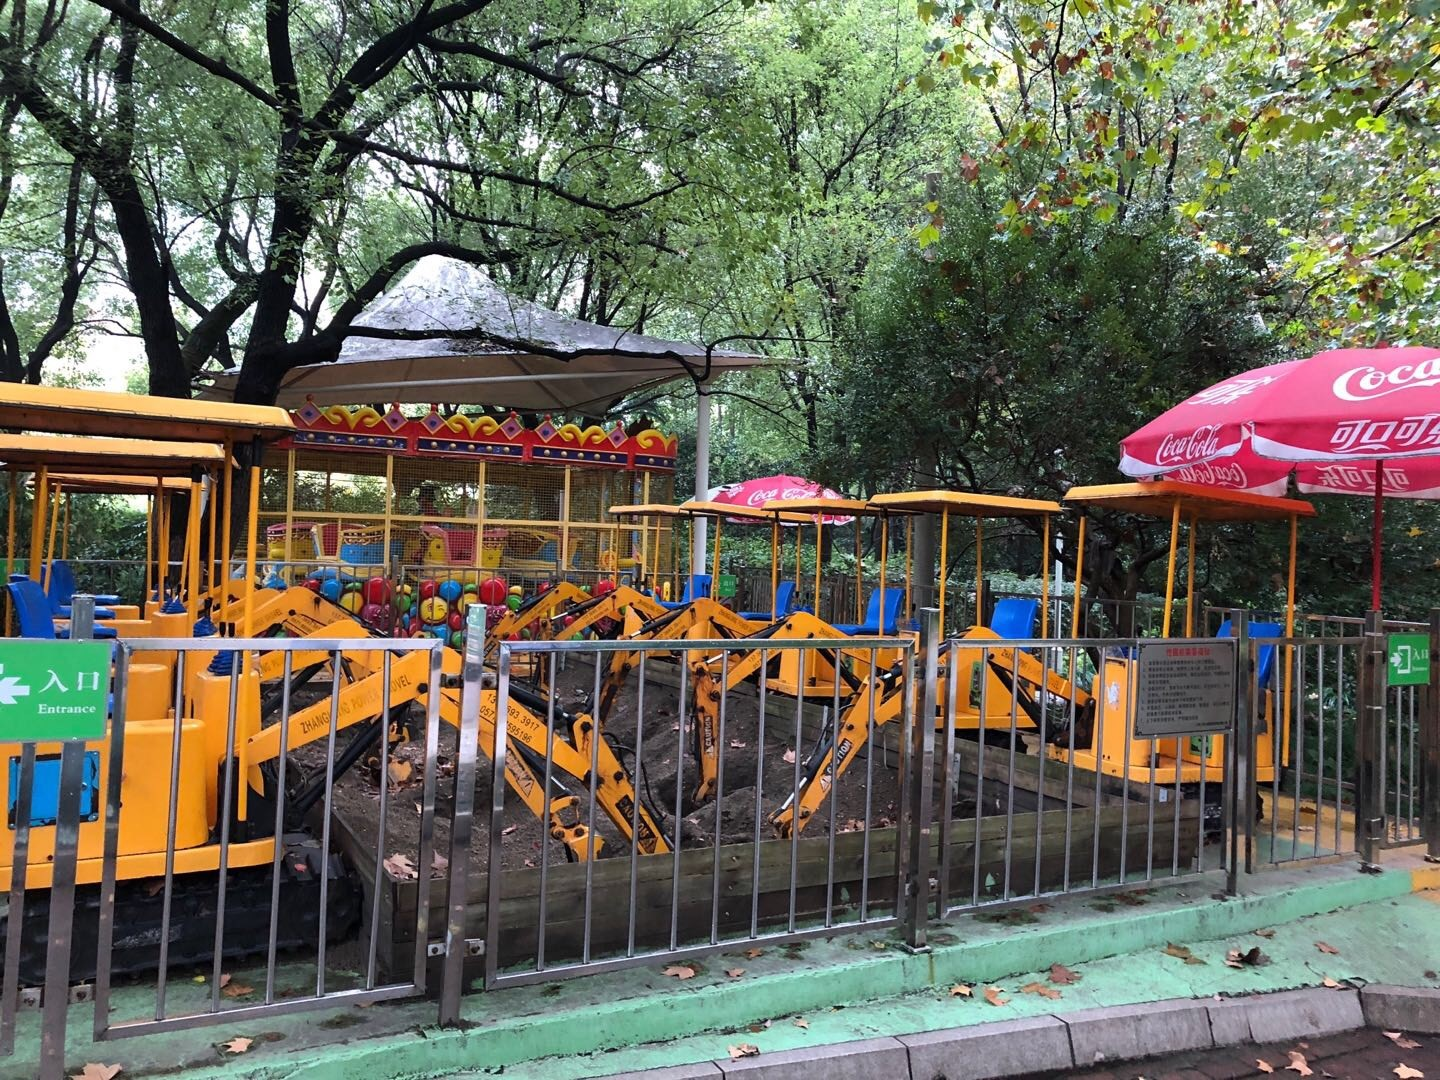 In the People's Park, the kids start young learning to build up China